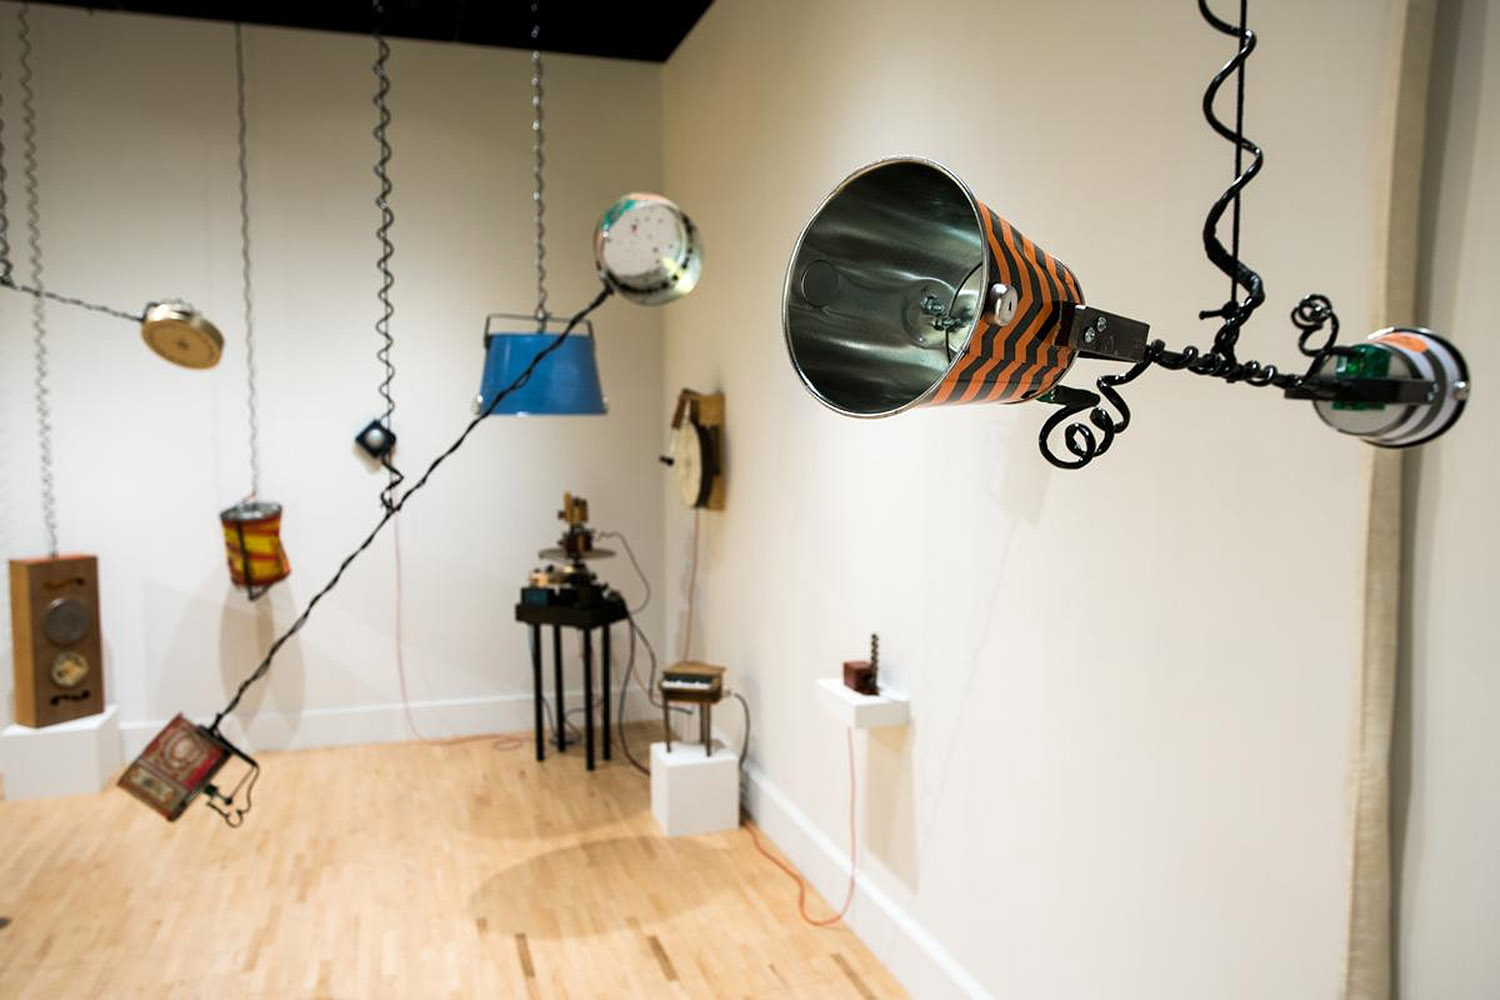 The Magnetosphere by Matthew Steinke is on display at the Kendall College of Art and Design at Ferris State University. <em><b>Photo Courtesy of Matt Gubancsik</b></em>